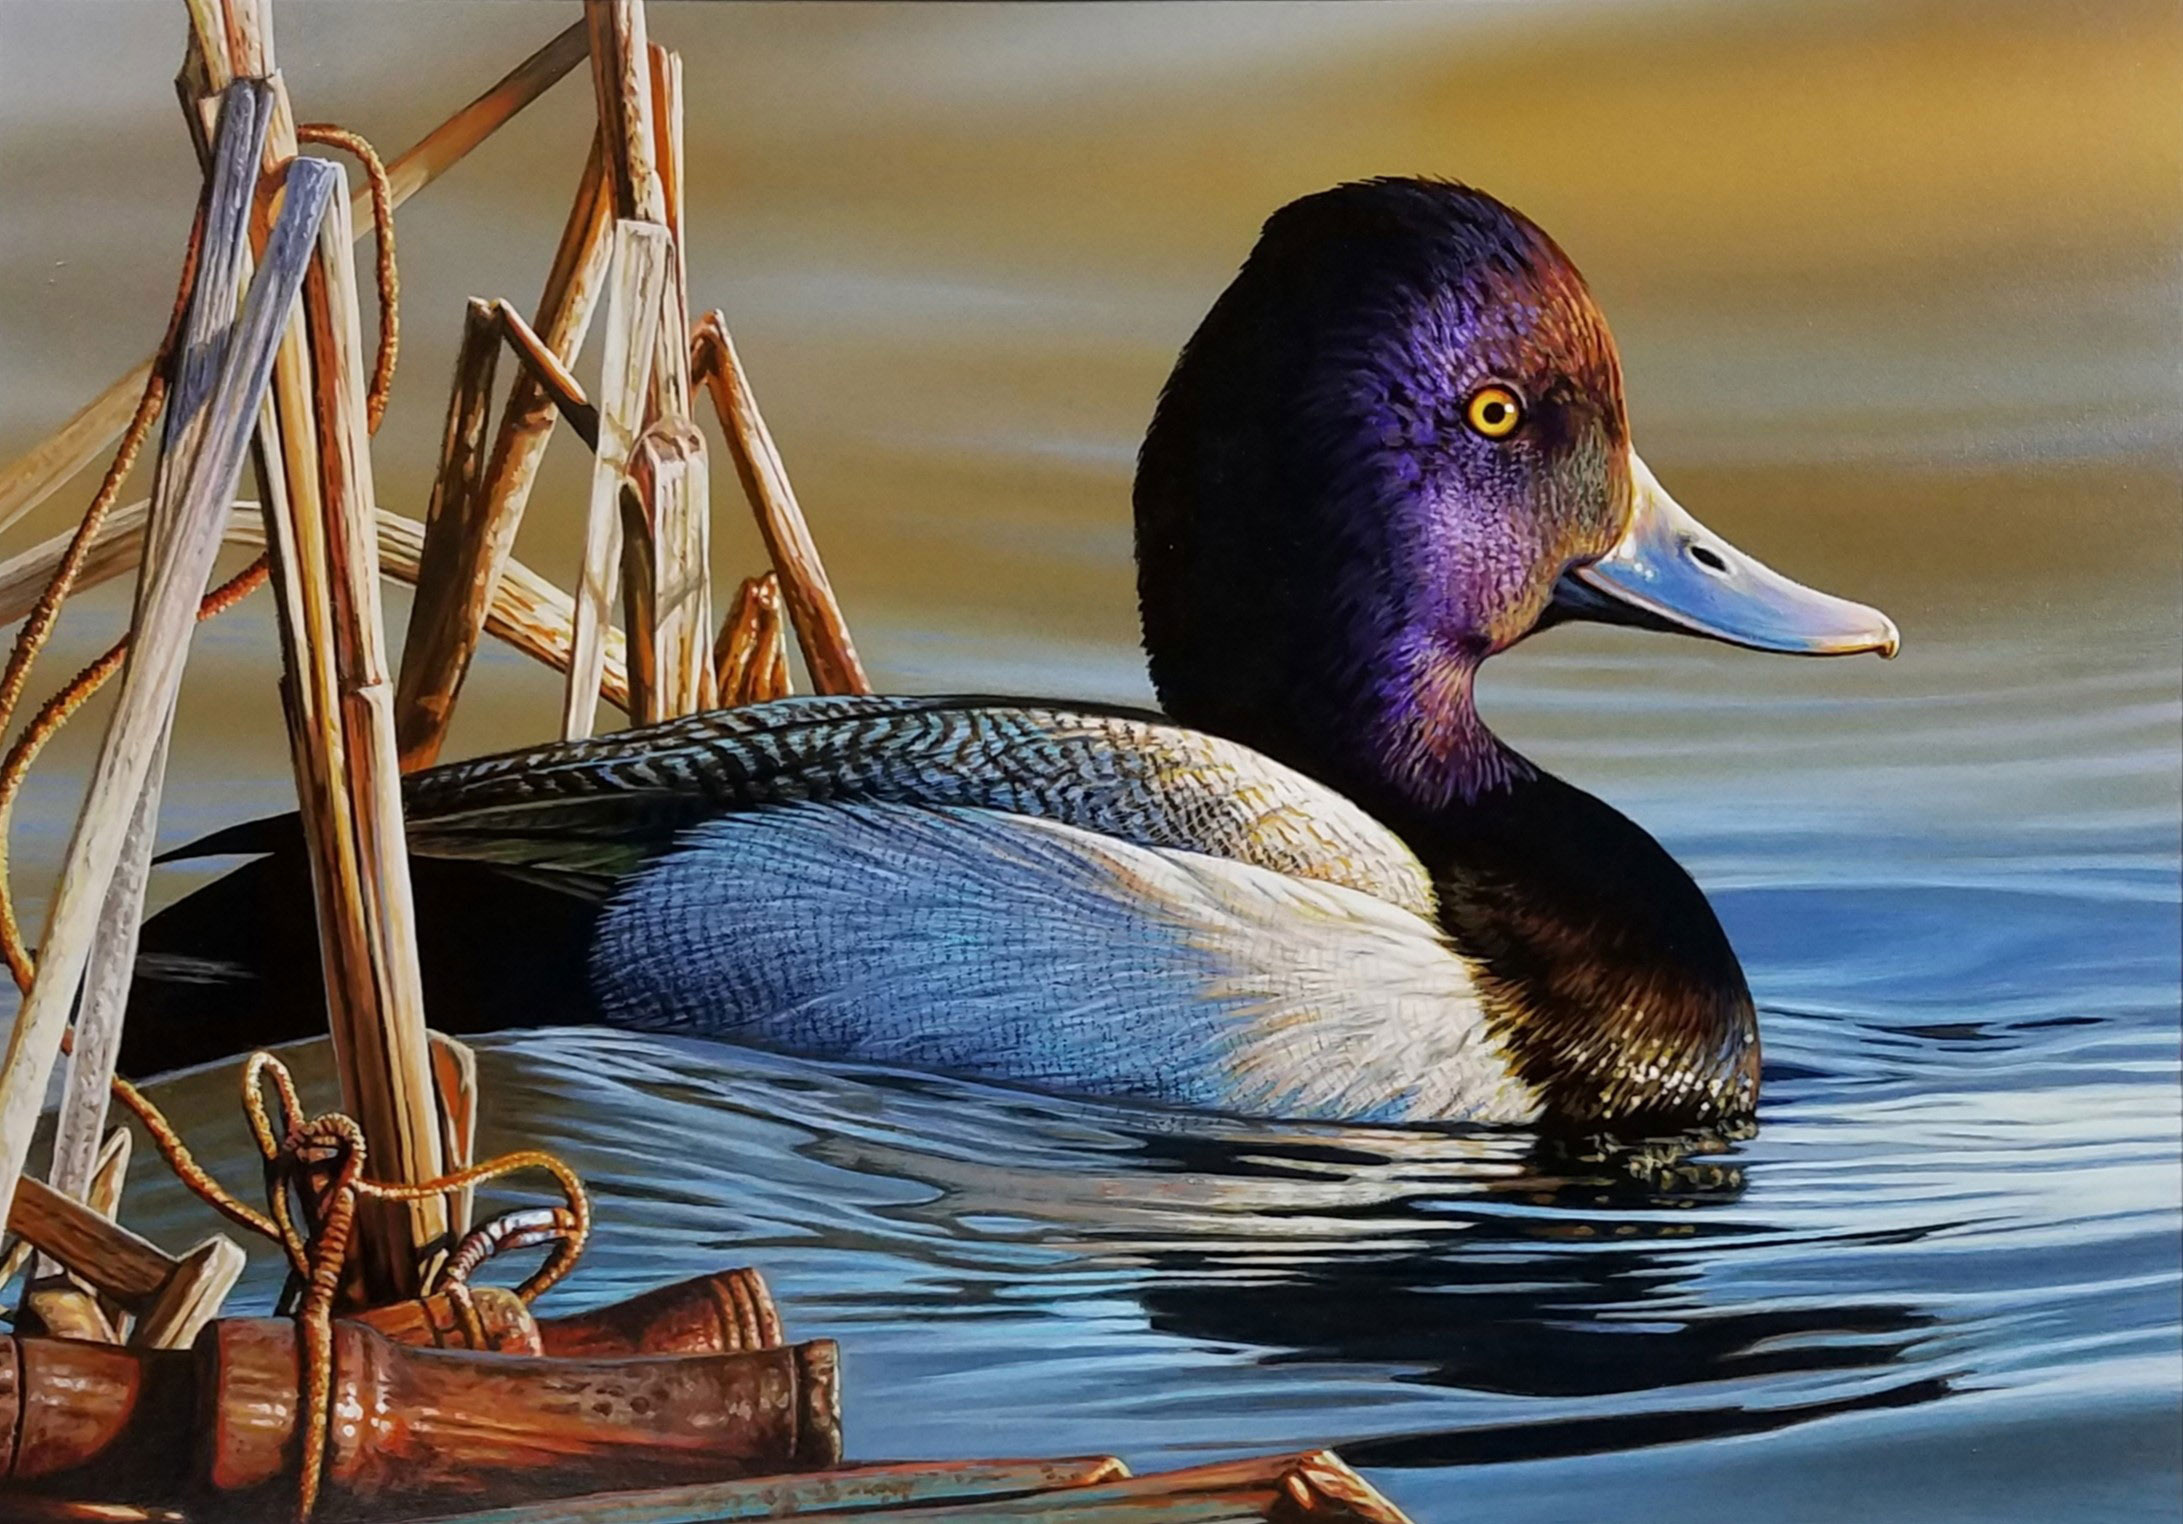 The winning entry to the 2020 Duck Stamp contest featured a Lesser Scaup and a lost duck call. Illustration: Richard Clifton